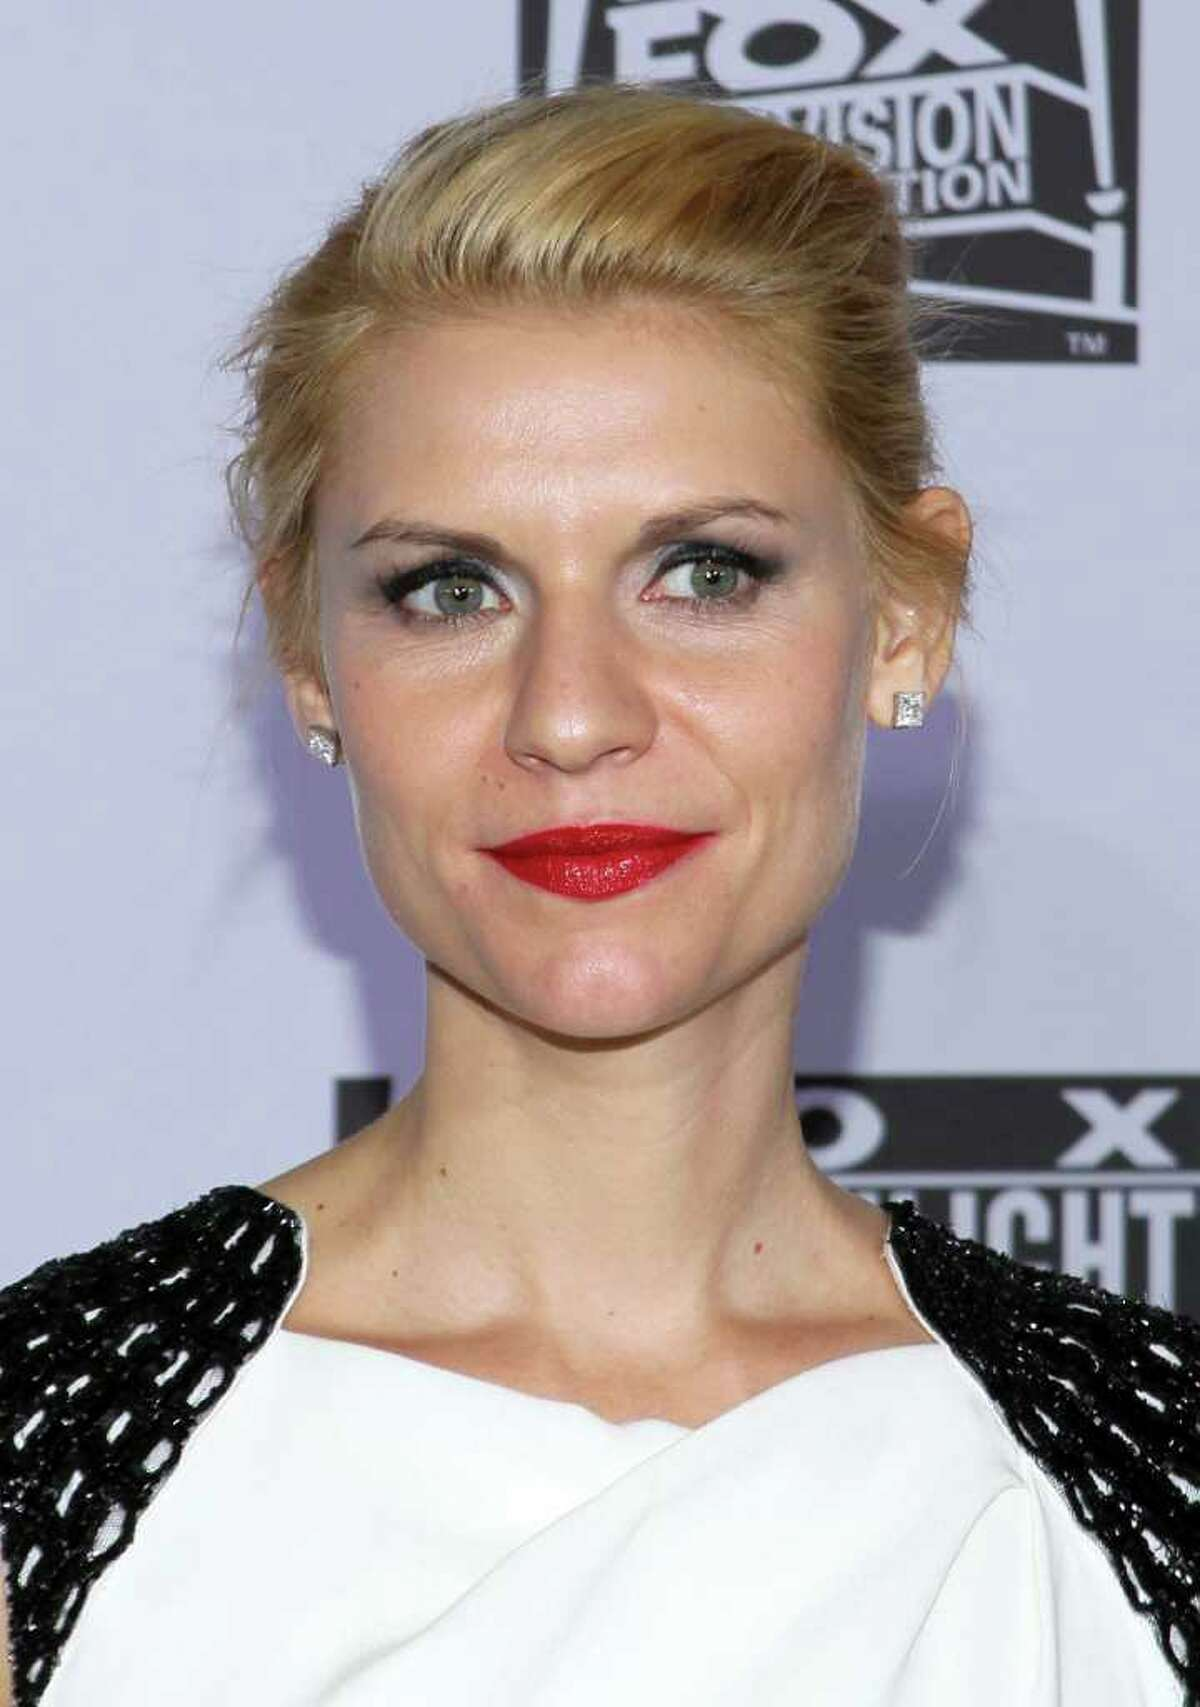 Actress Claire Danes arrives at NBC Universal's 69th Annual Golden Globe Awards After Party at The Beverly Hilton hotel on January 15, 2012 in Beverly Hills, California.